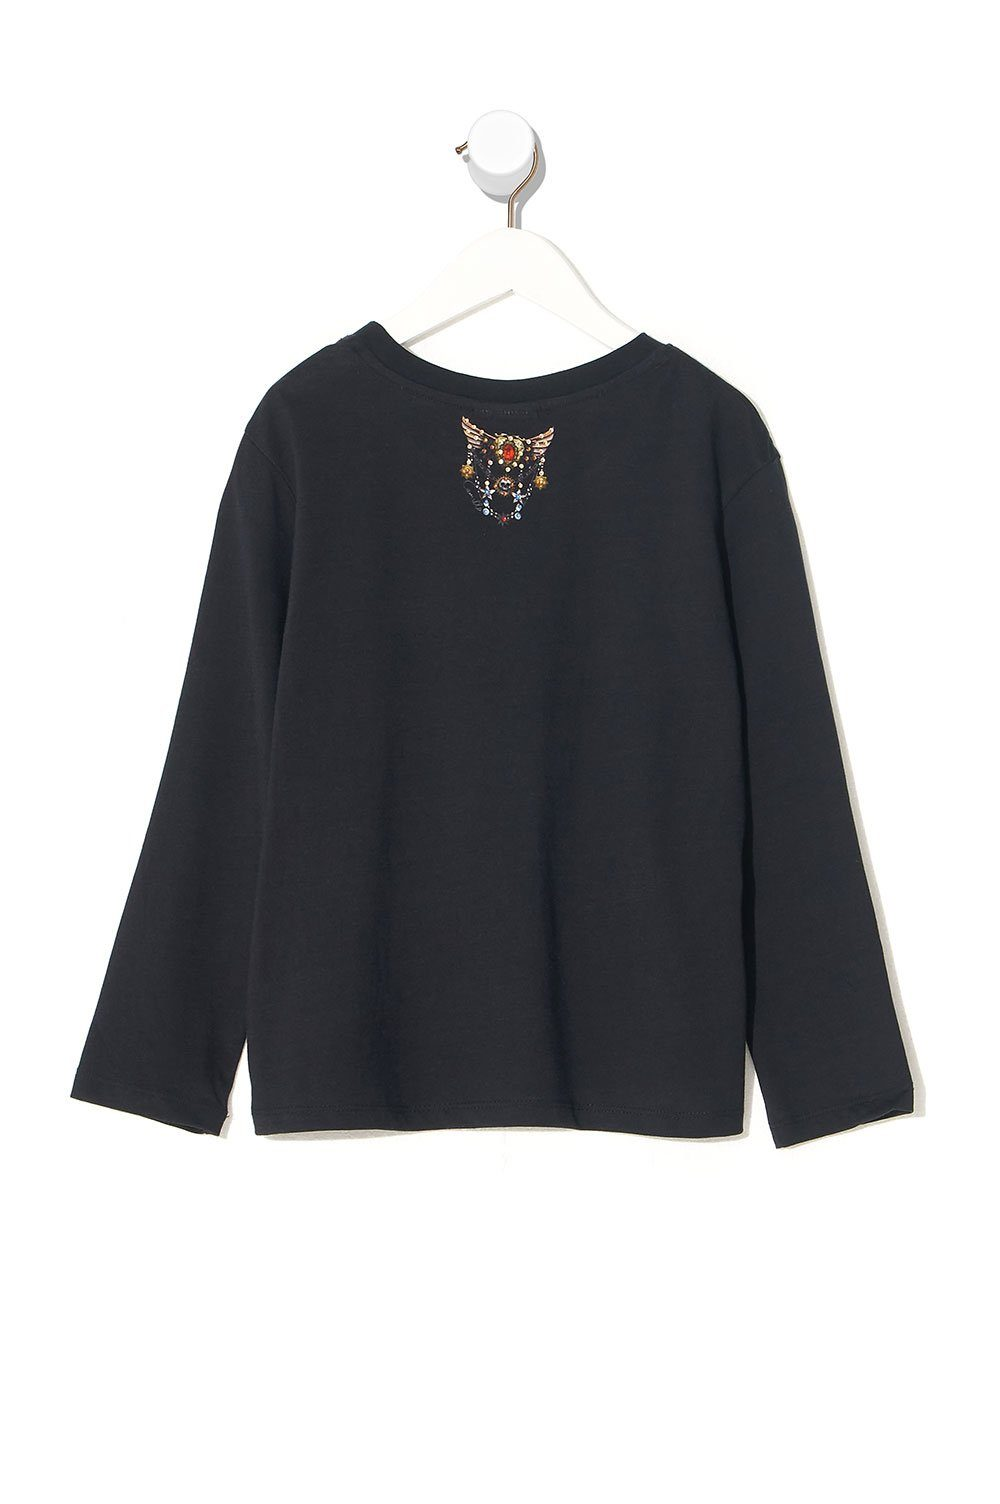 London Calling Kids Long Sleeve Top 4-10 GIRLS CLOTHING CAMILLA